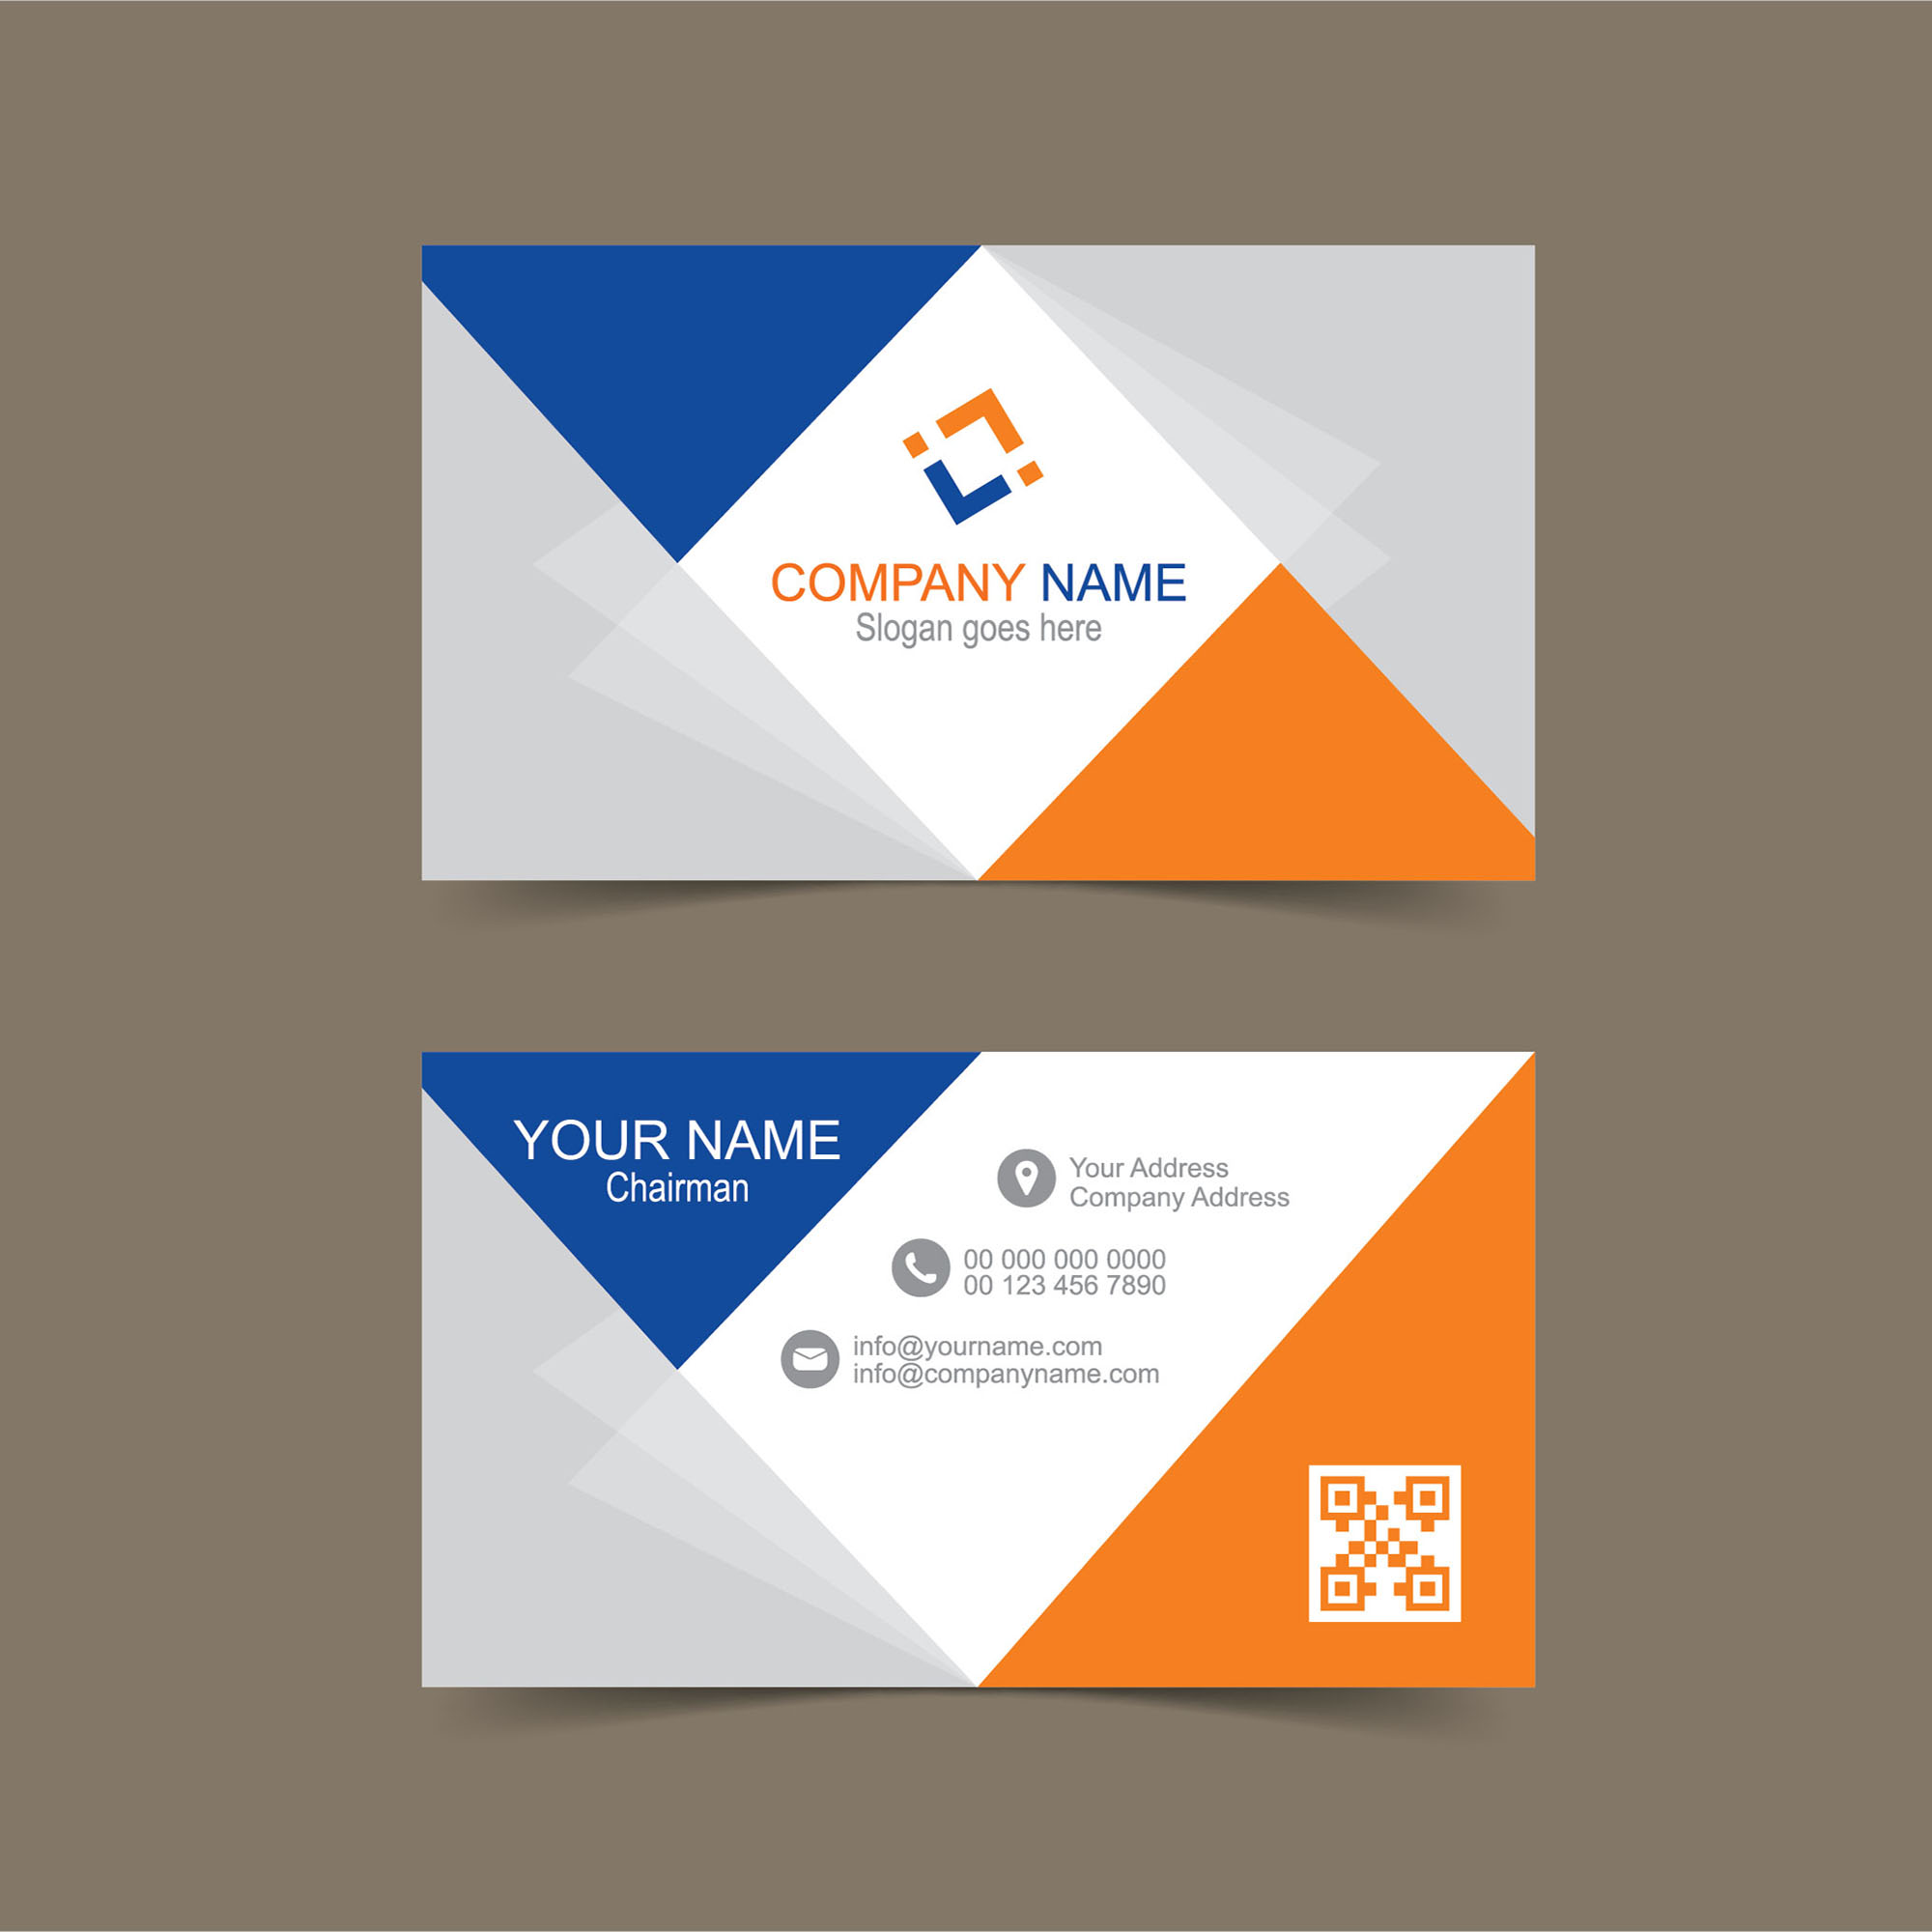 Free business card template for illustrator wisxi business card business cards business card design business card template design templates fbccfo Image collections